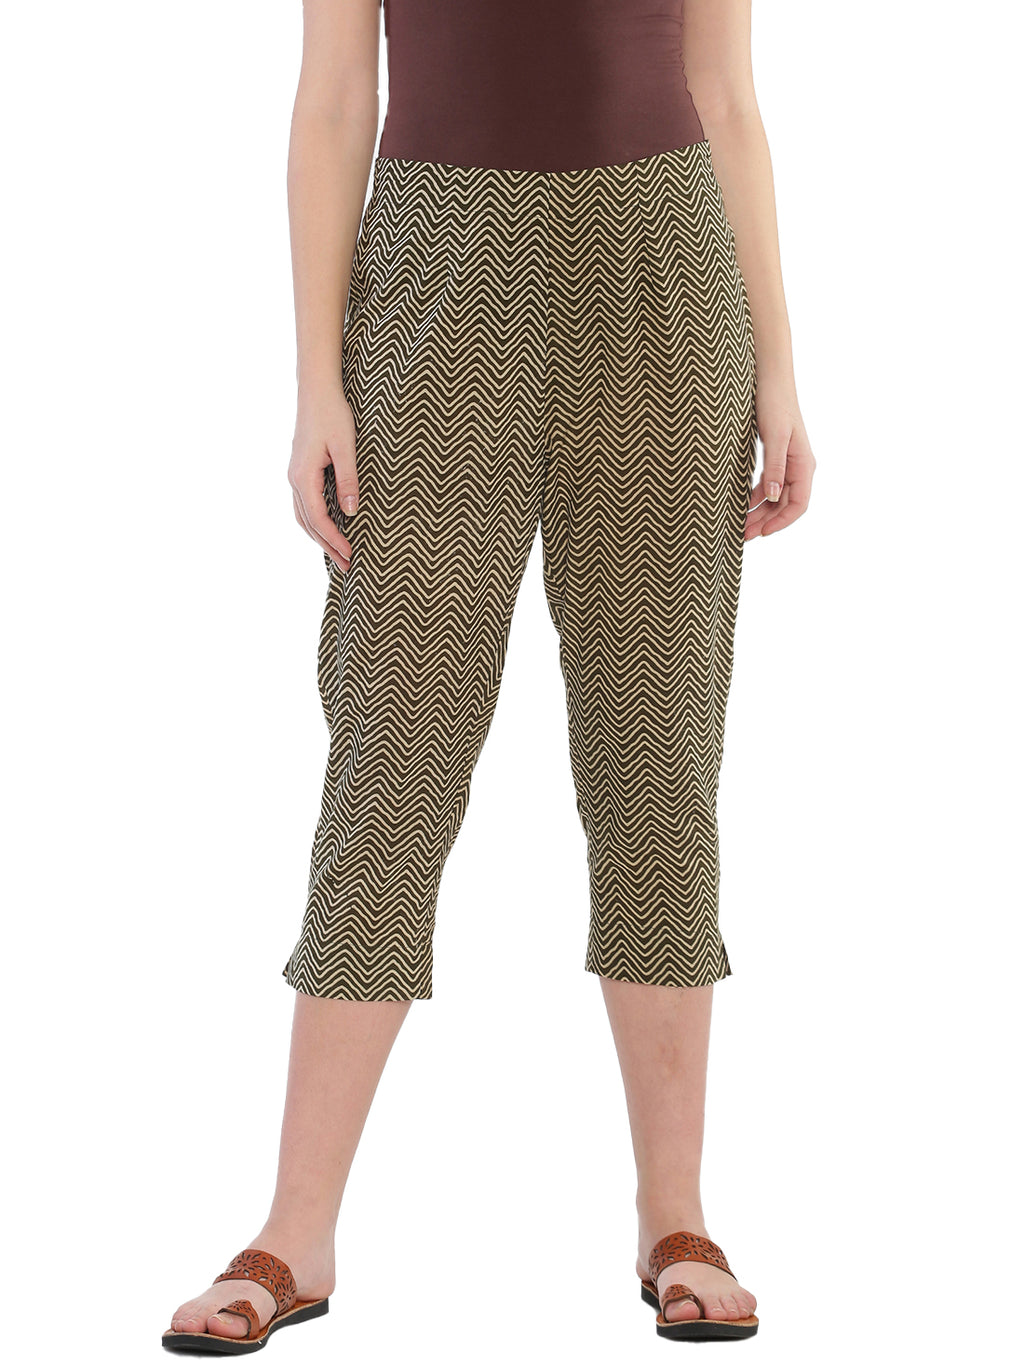 Khaki Naturally Dyed Cotton Chevron Hand Block Printed Cropped Cigarette Pants